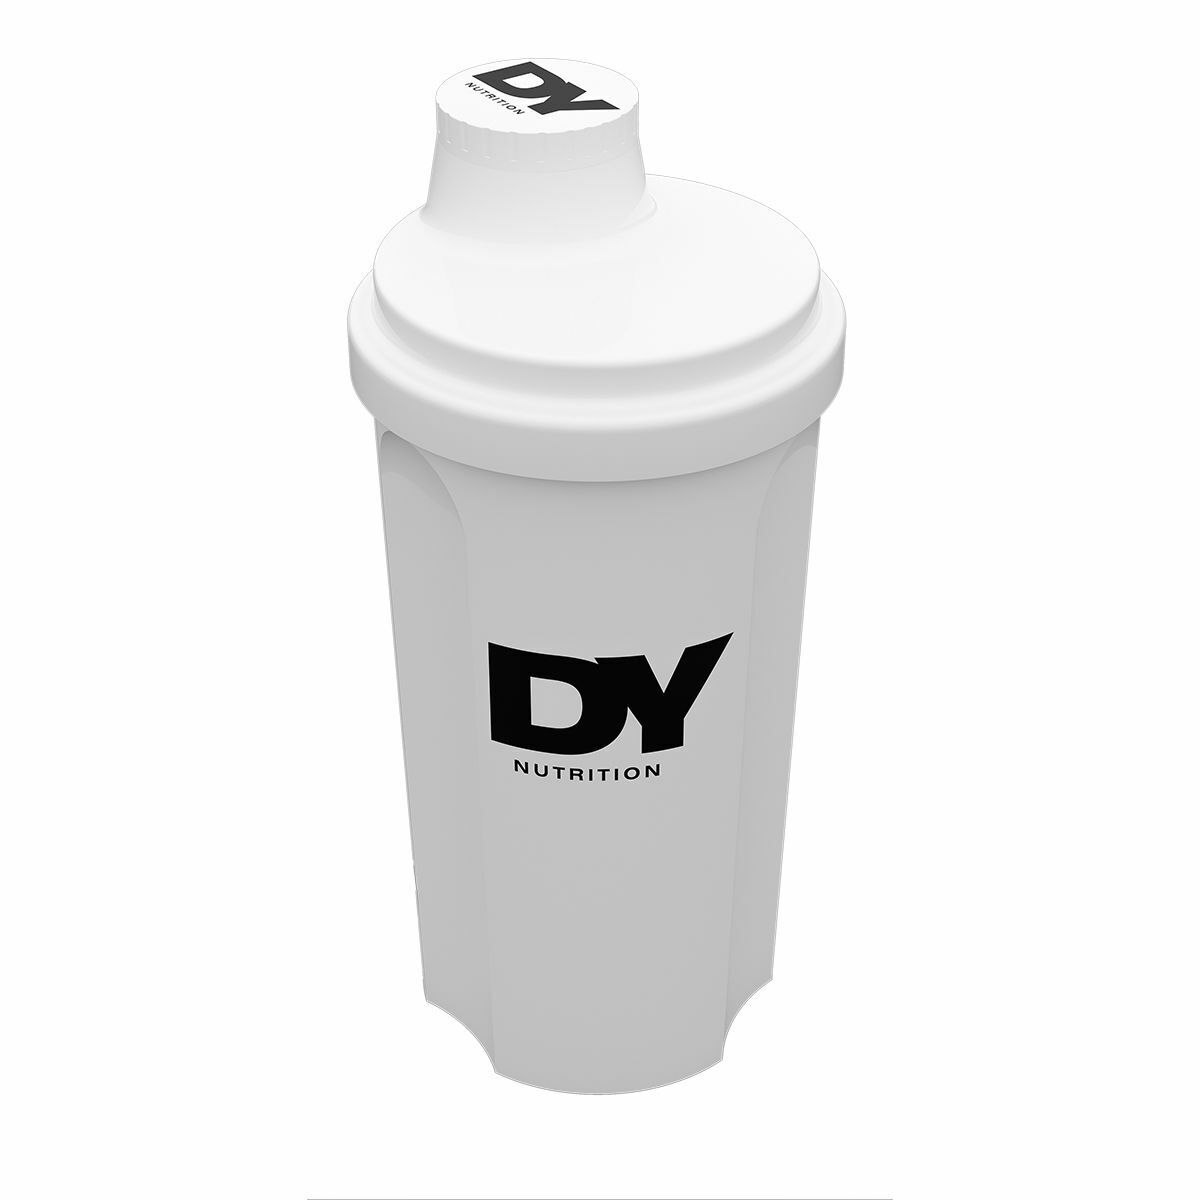 Image 6 - Dorian Yates Signature Shaker Cup DY Nutrition shaker 3 sided design in 2 colour